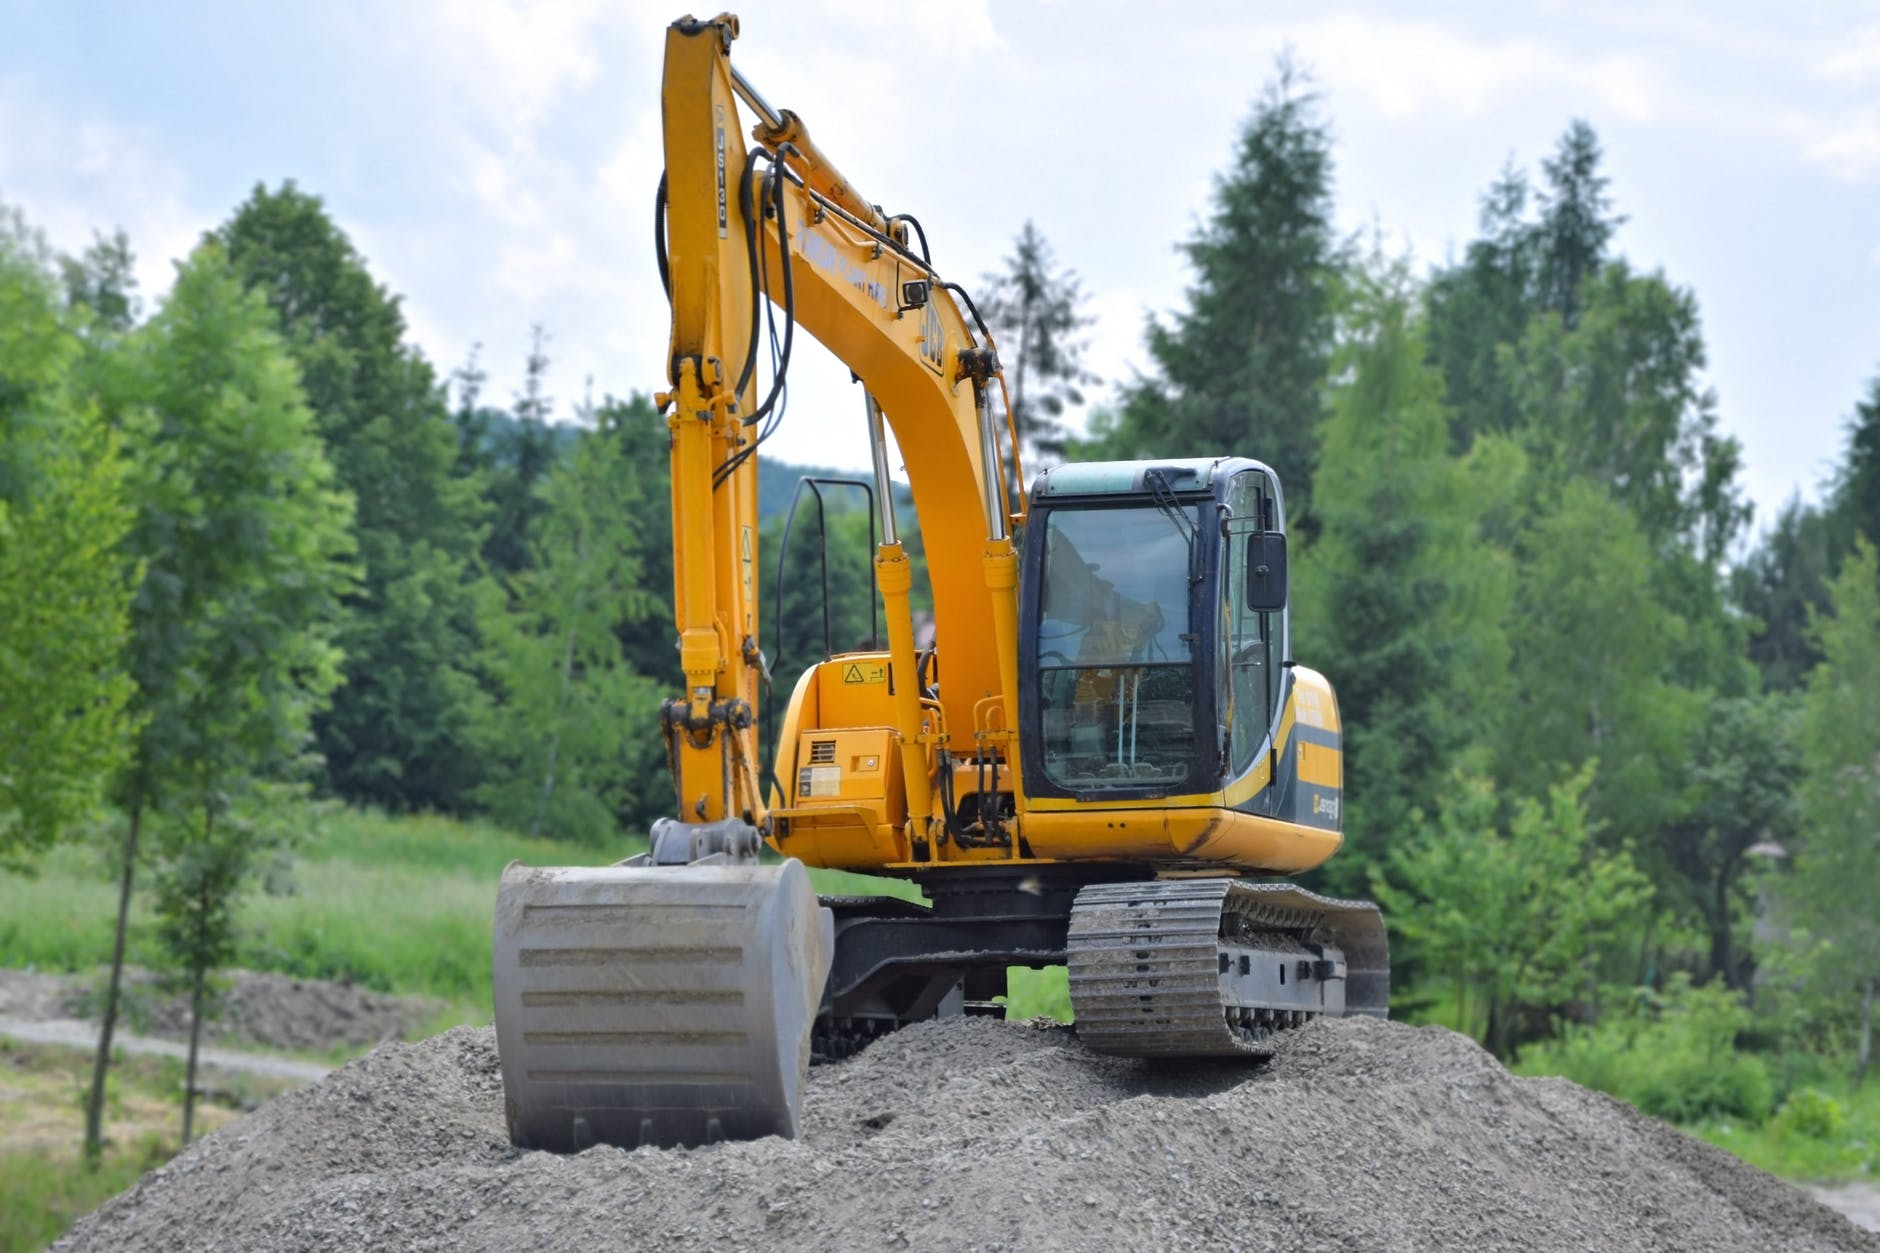 Most Popular Machines used in Worksites